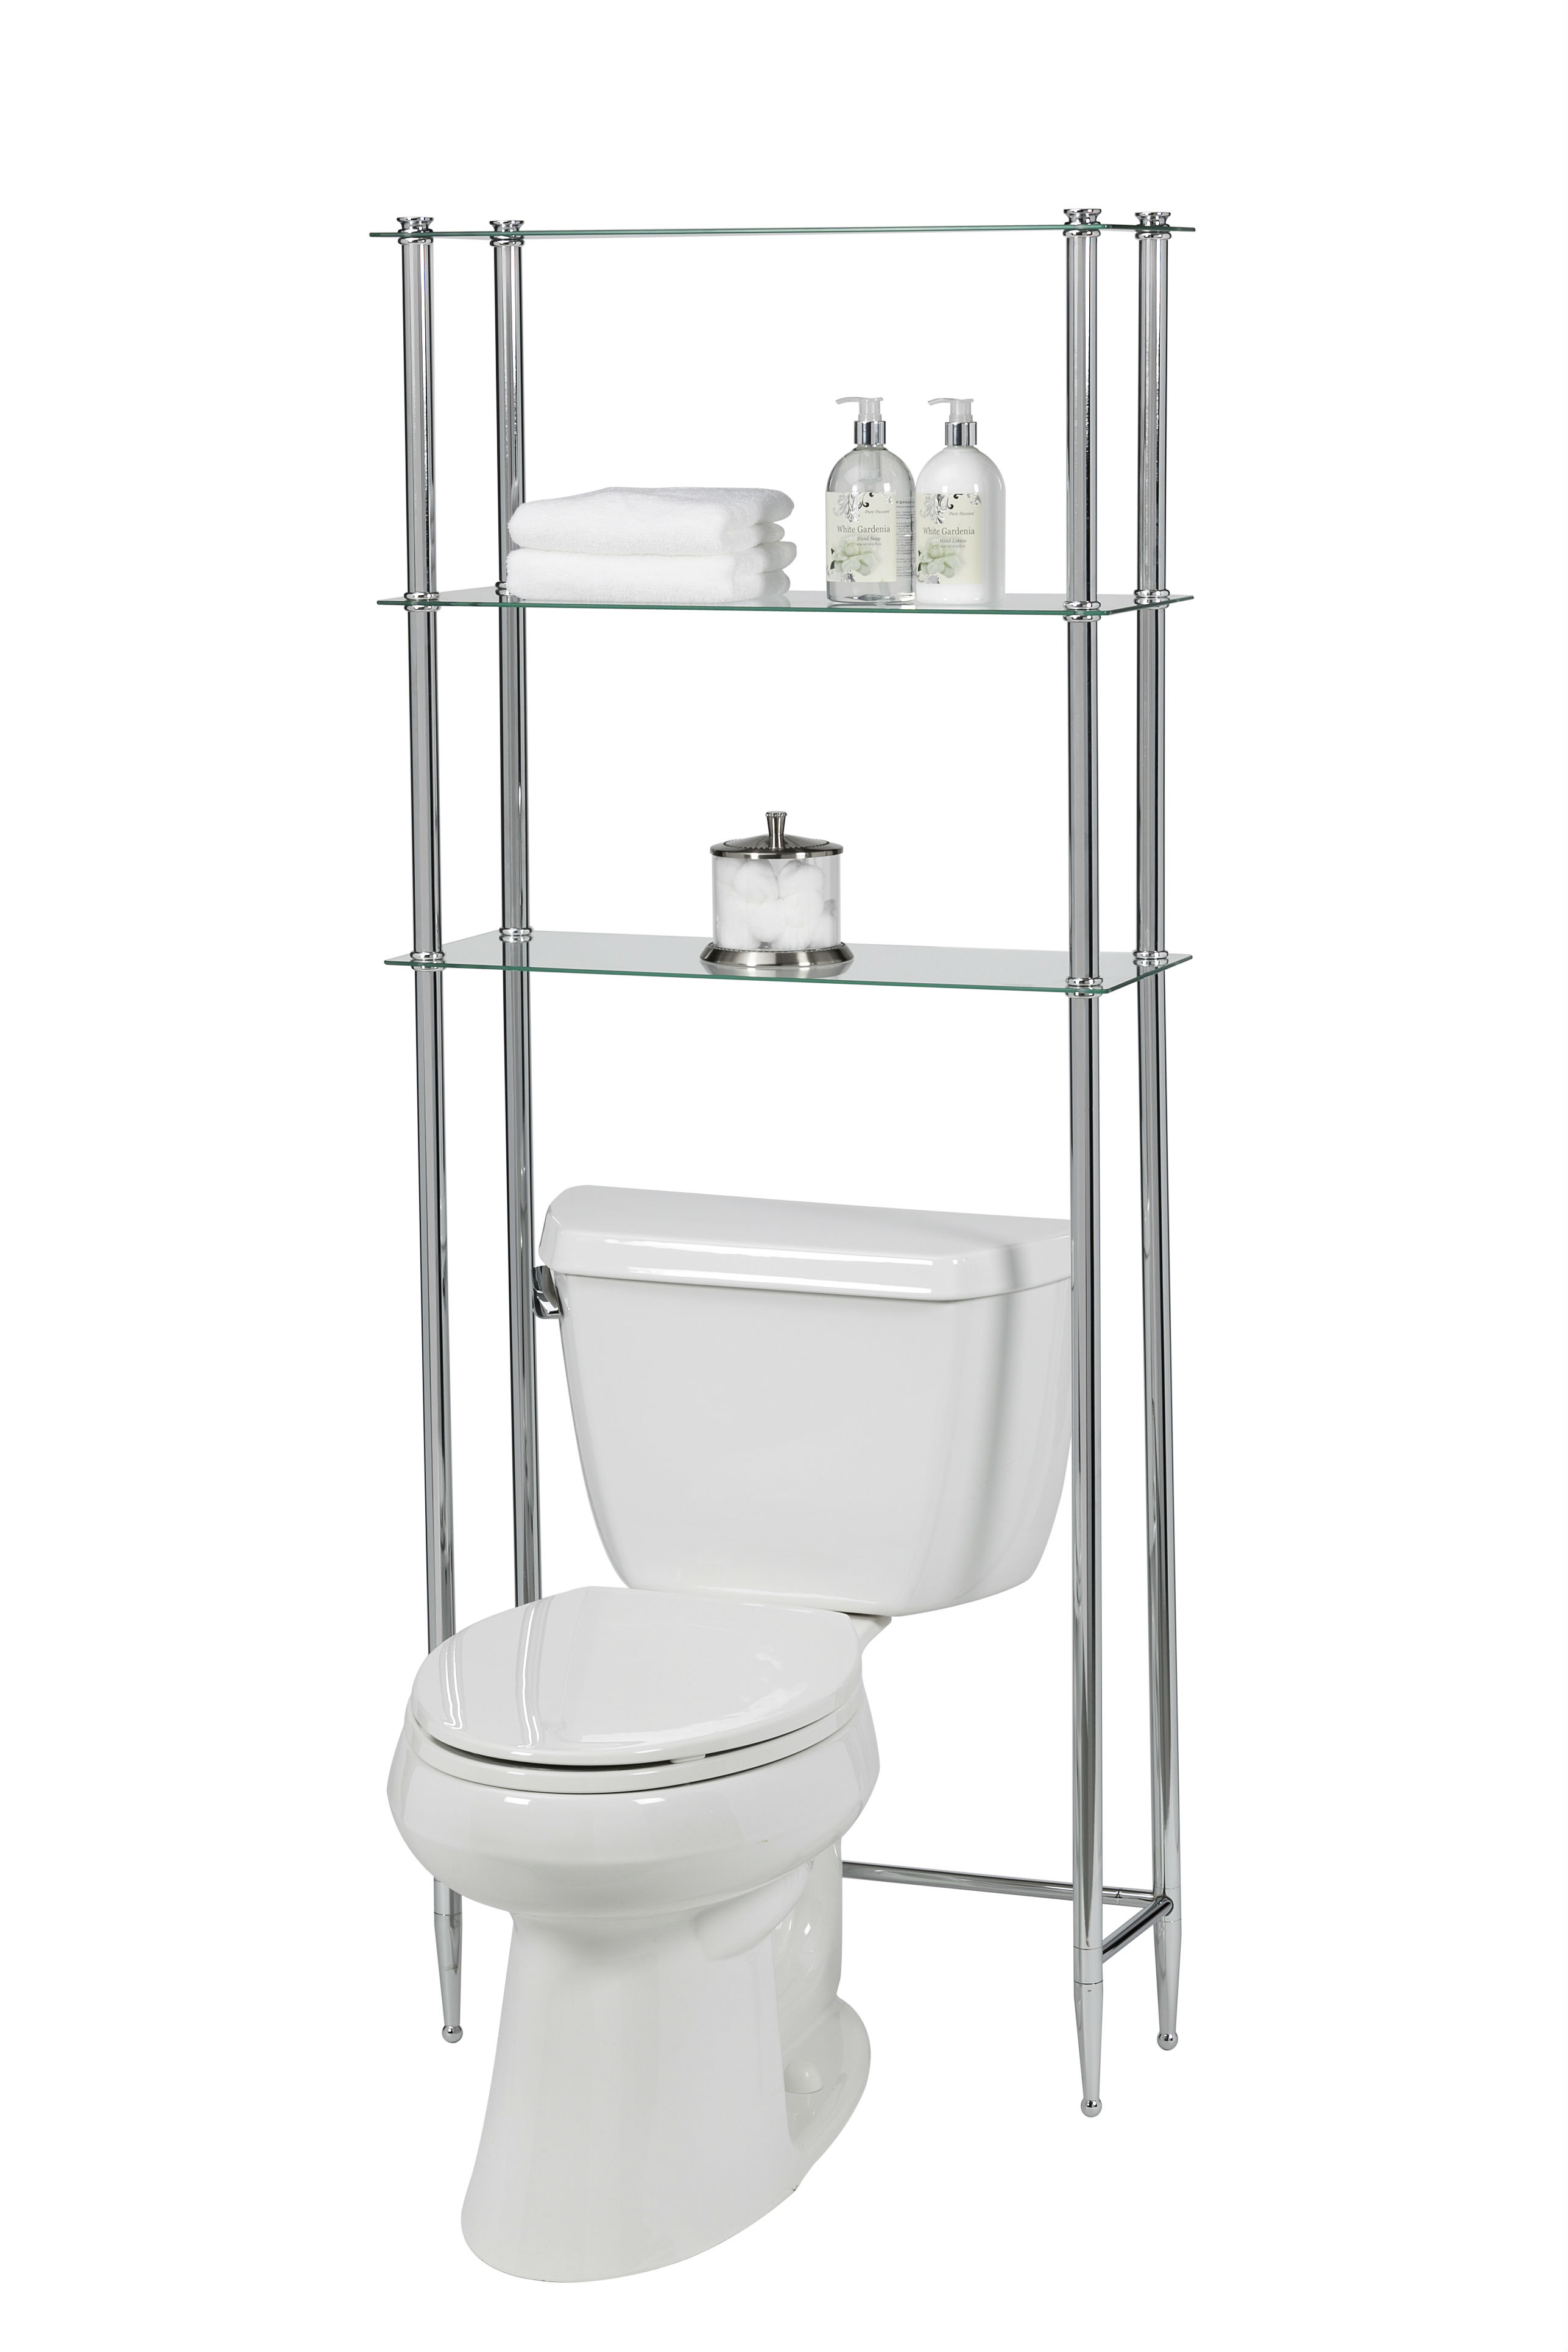 spacesaver home tier garden overstock shipping doors today leighton bathroom glass product collection with free